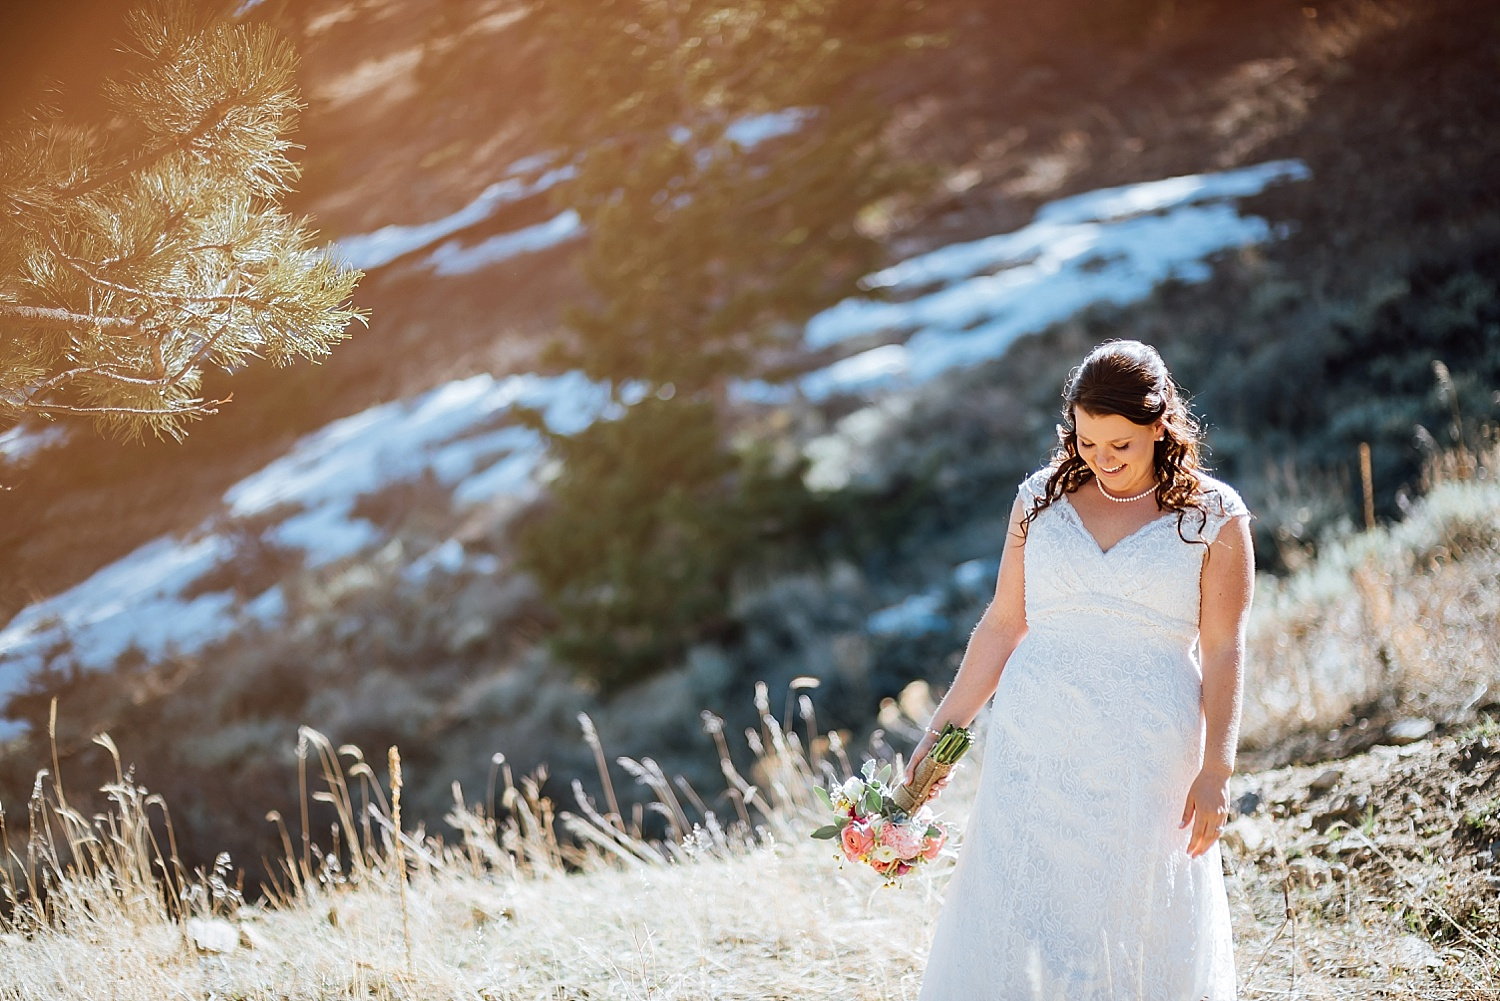 This bride looks so happy! I love how she paired the pearl necklace with the lace dress. Also, how fun would it be to have your wedding photos taken on a mountain with snow in the background!Photo by Maddie Mae Photography